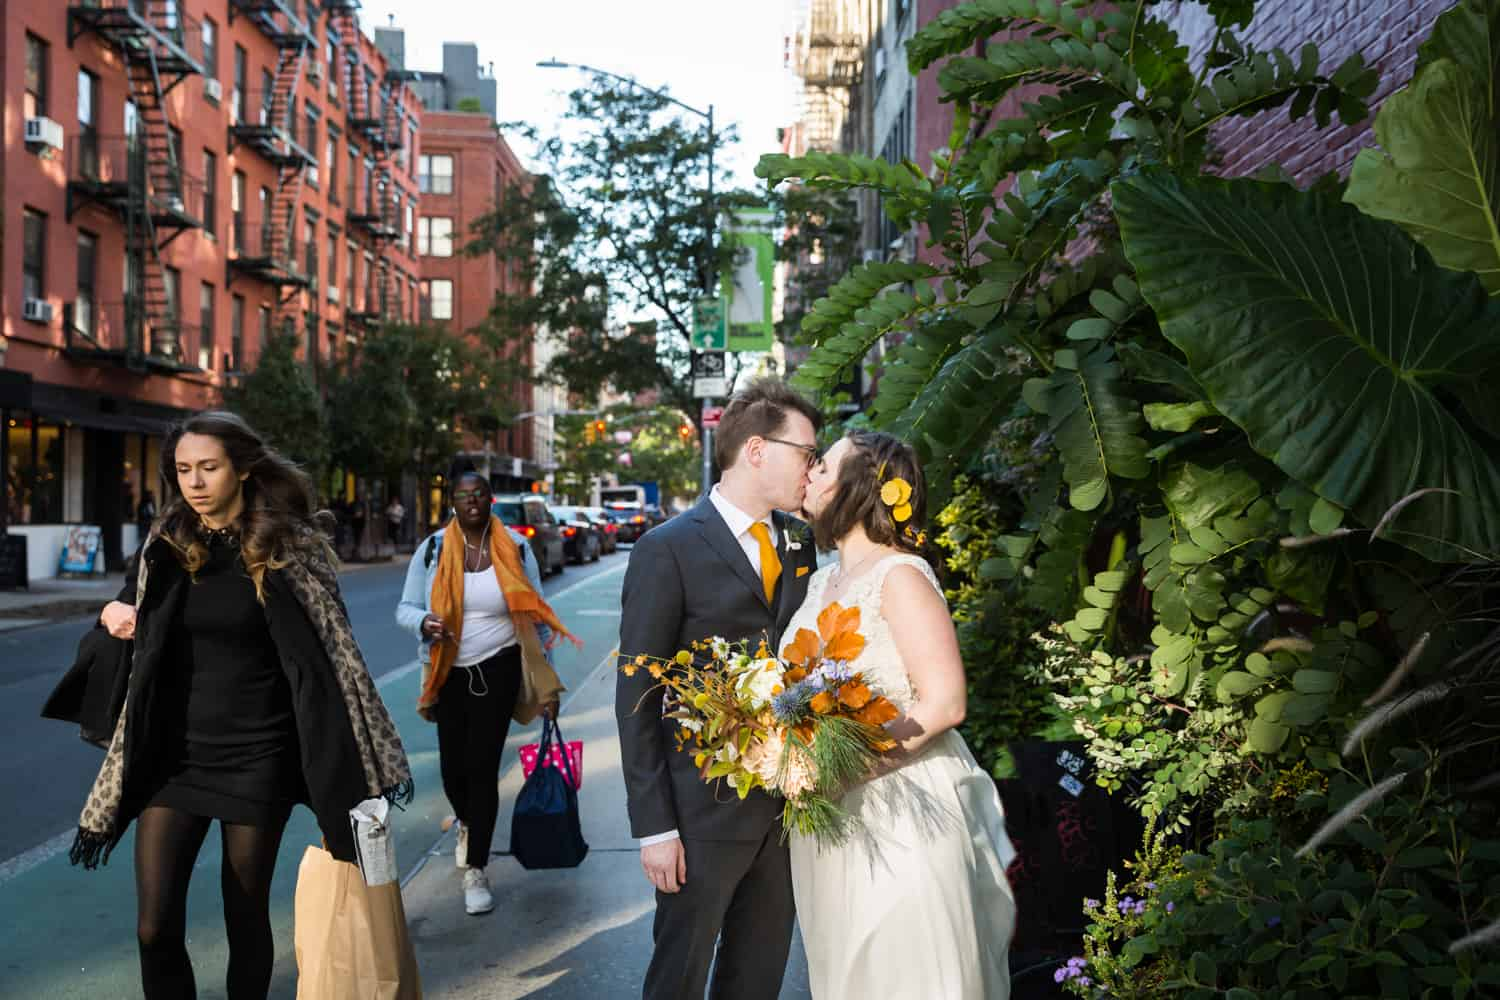 Bride and groom kissing on sidewalk for an article on Covid-19 wedding planning